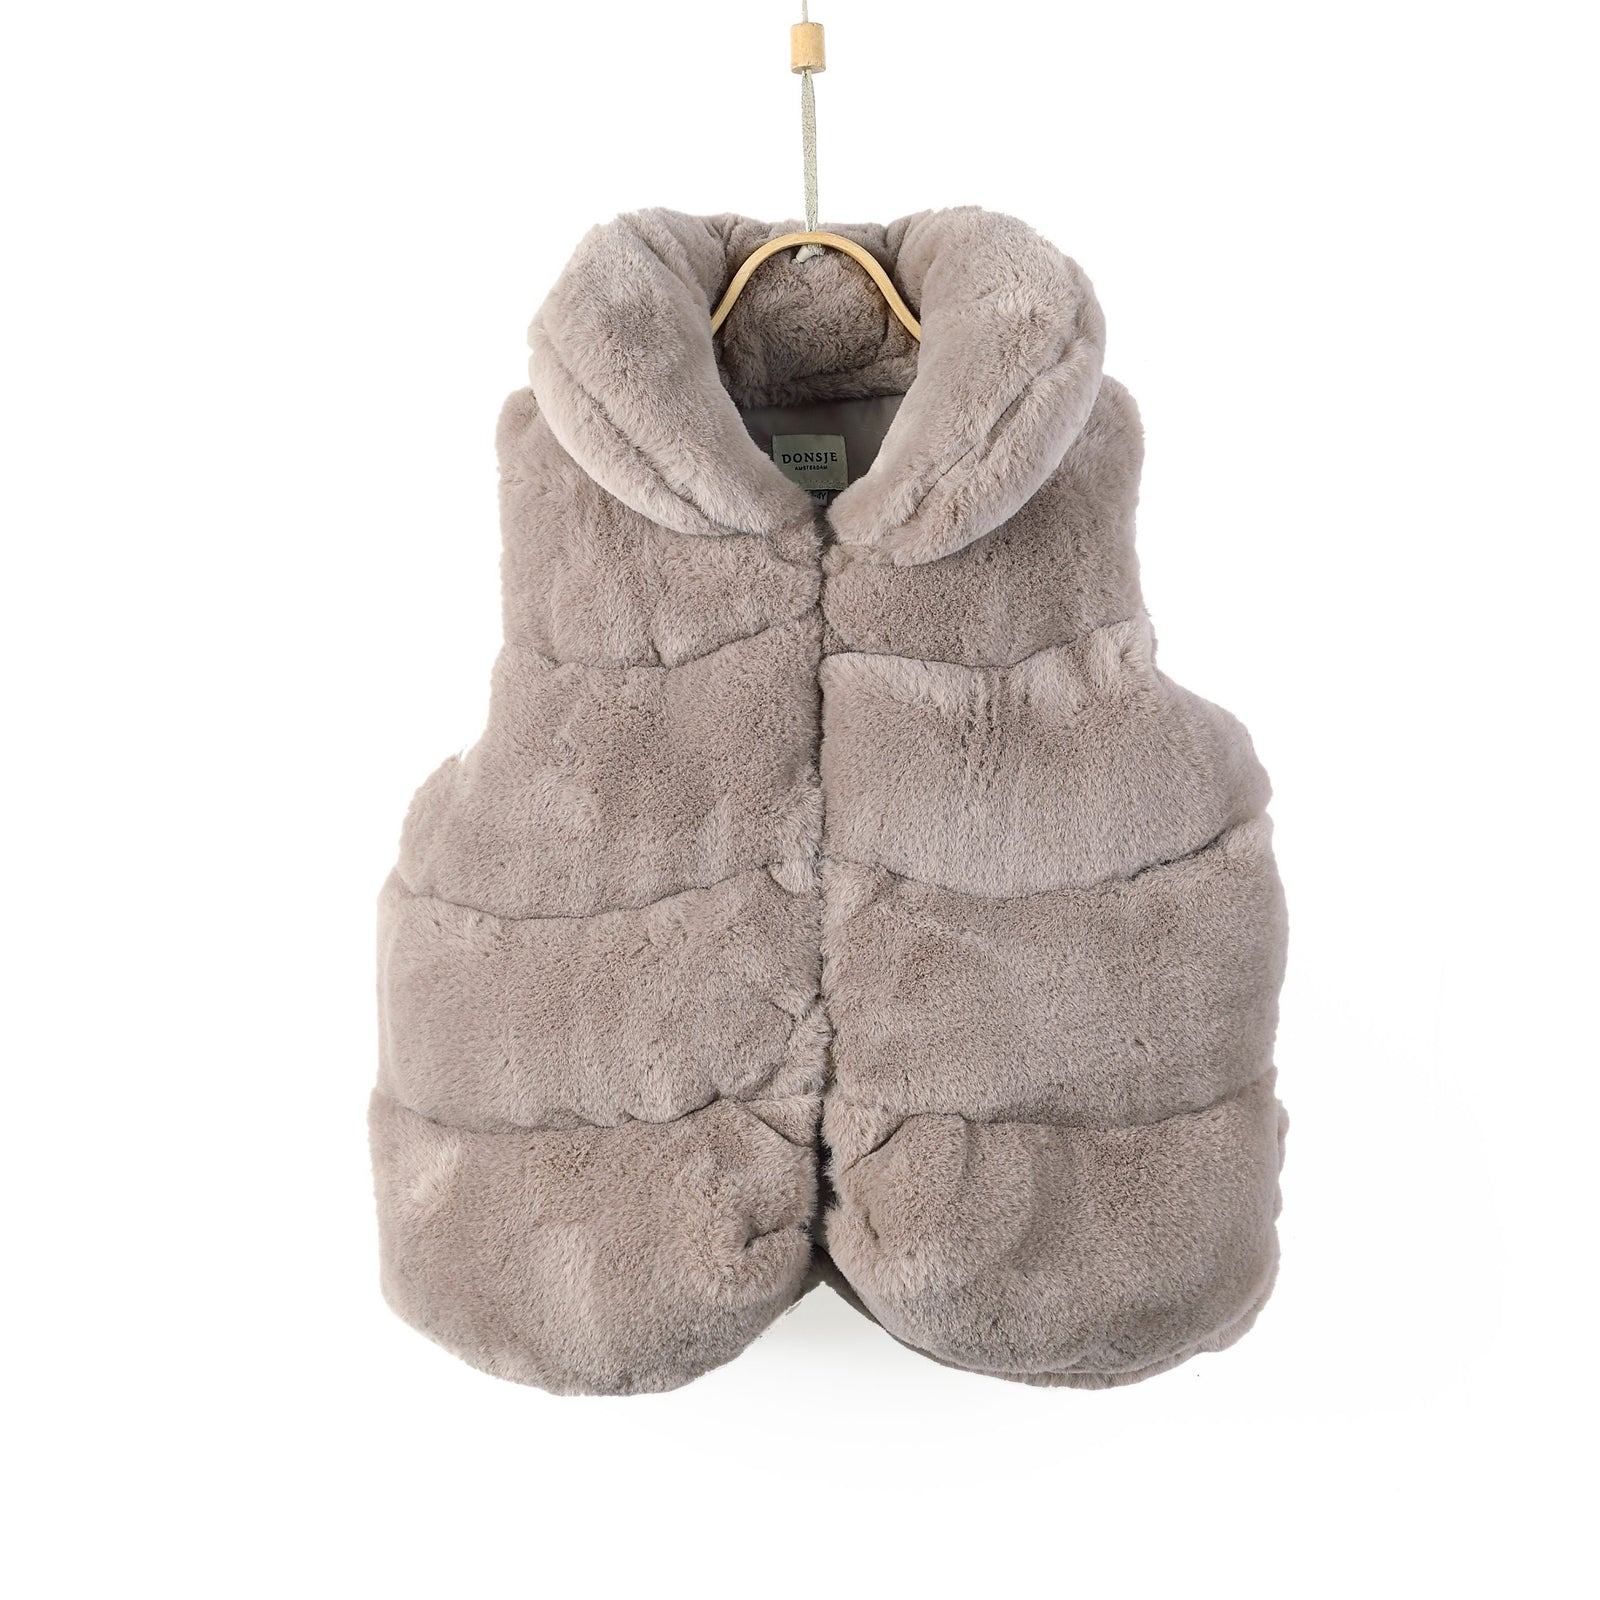 Jane Bodywarmer Vest - Cloudy Teddy